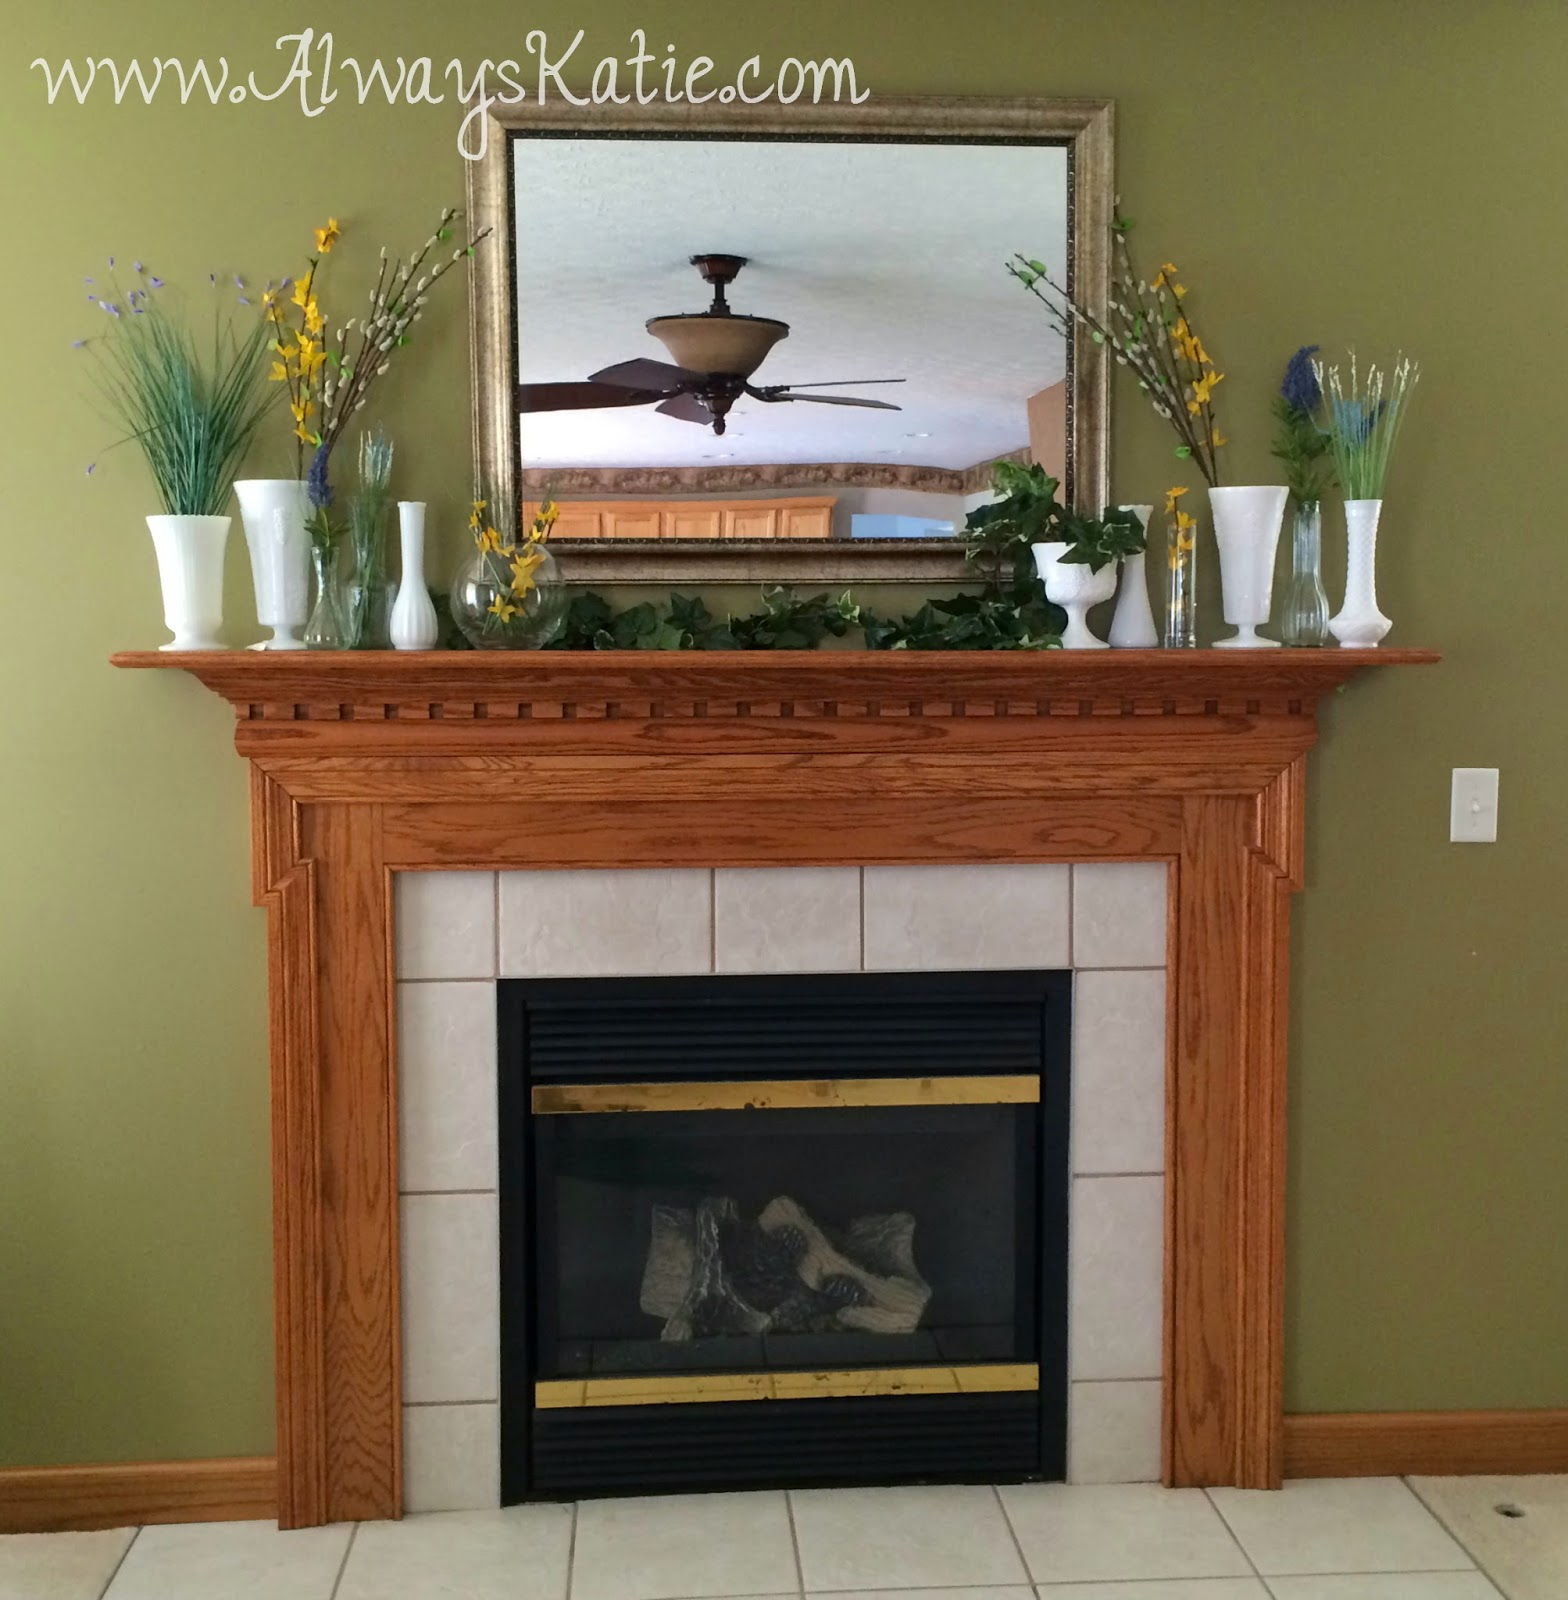 Mantle Decor Always Katie Home Sweet Home Mantle Decor